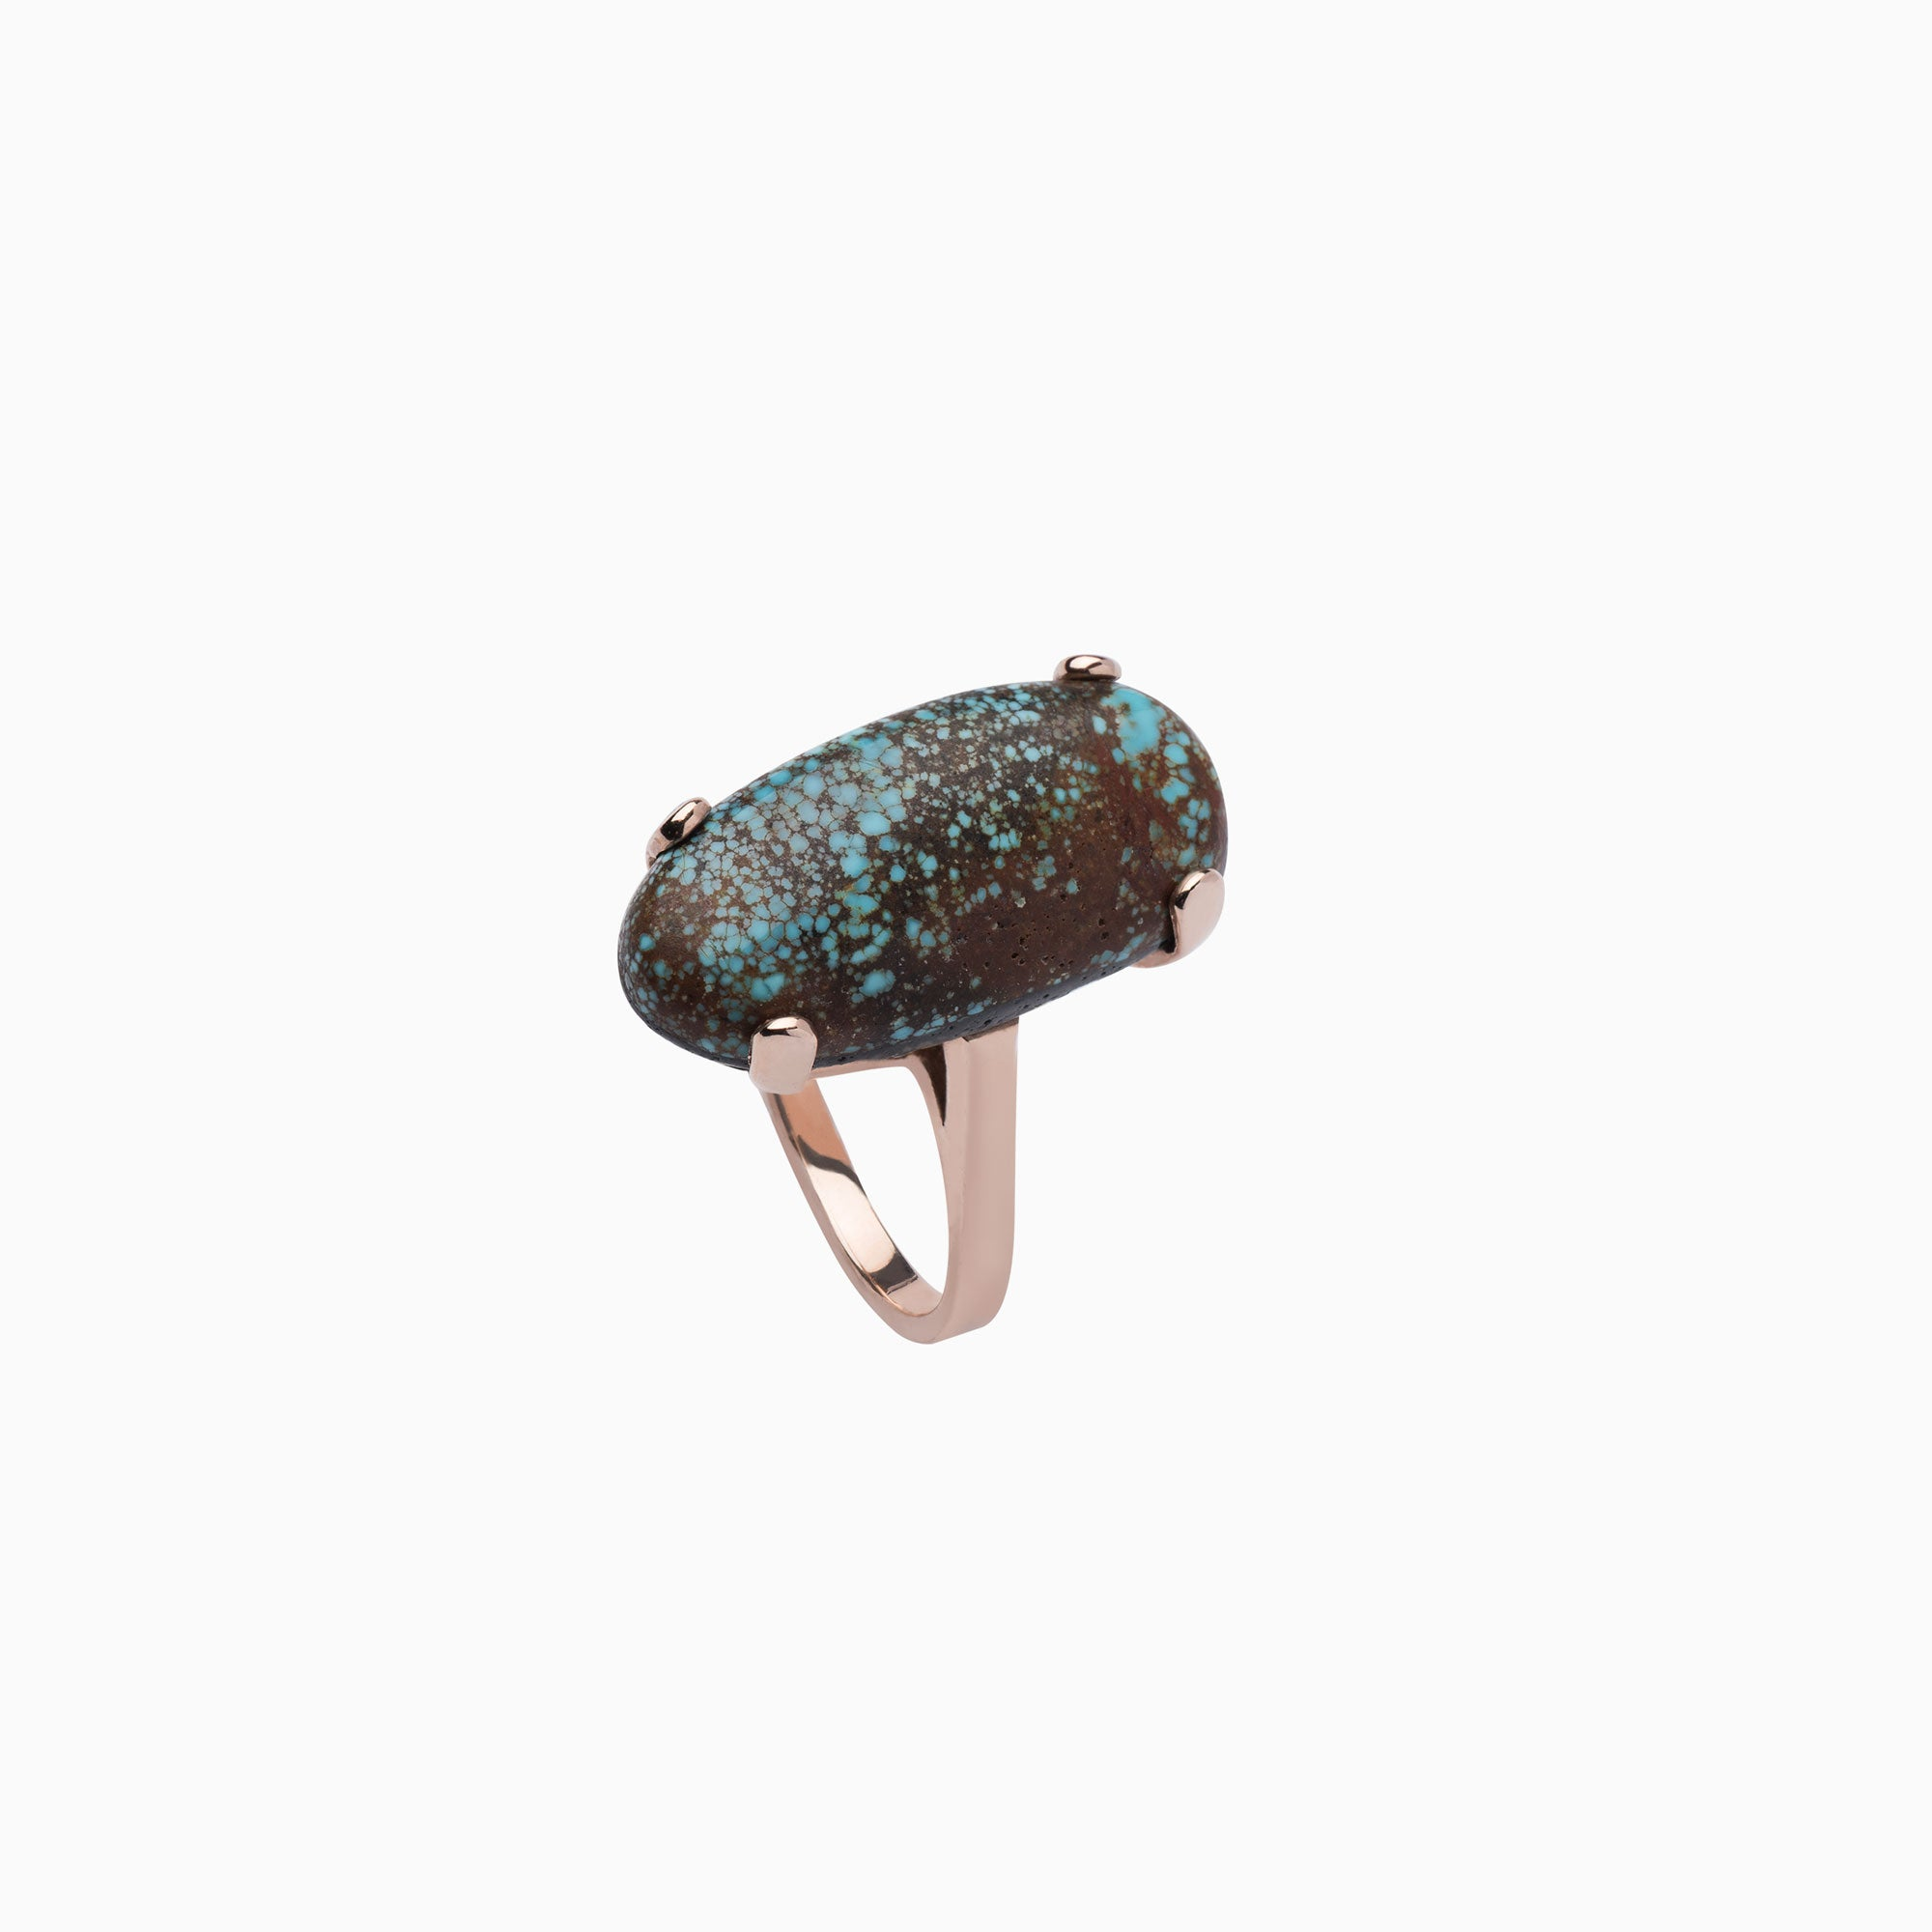 Nessa Designs Jewelry | Rings | Turquoise Ring